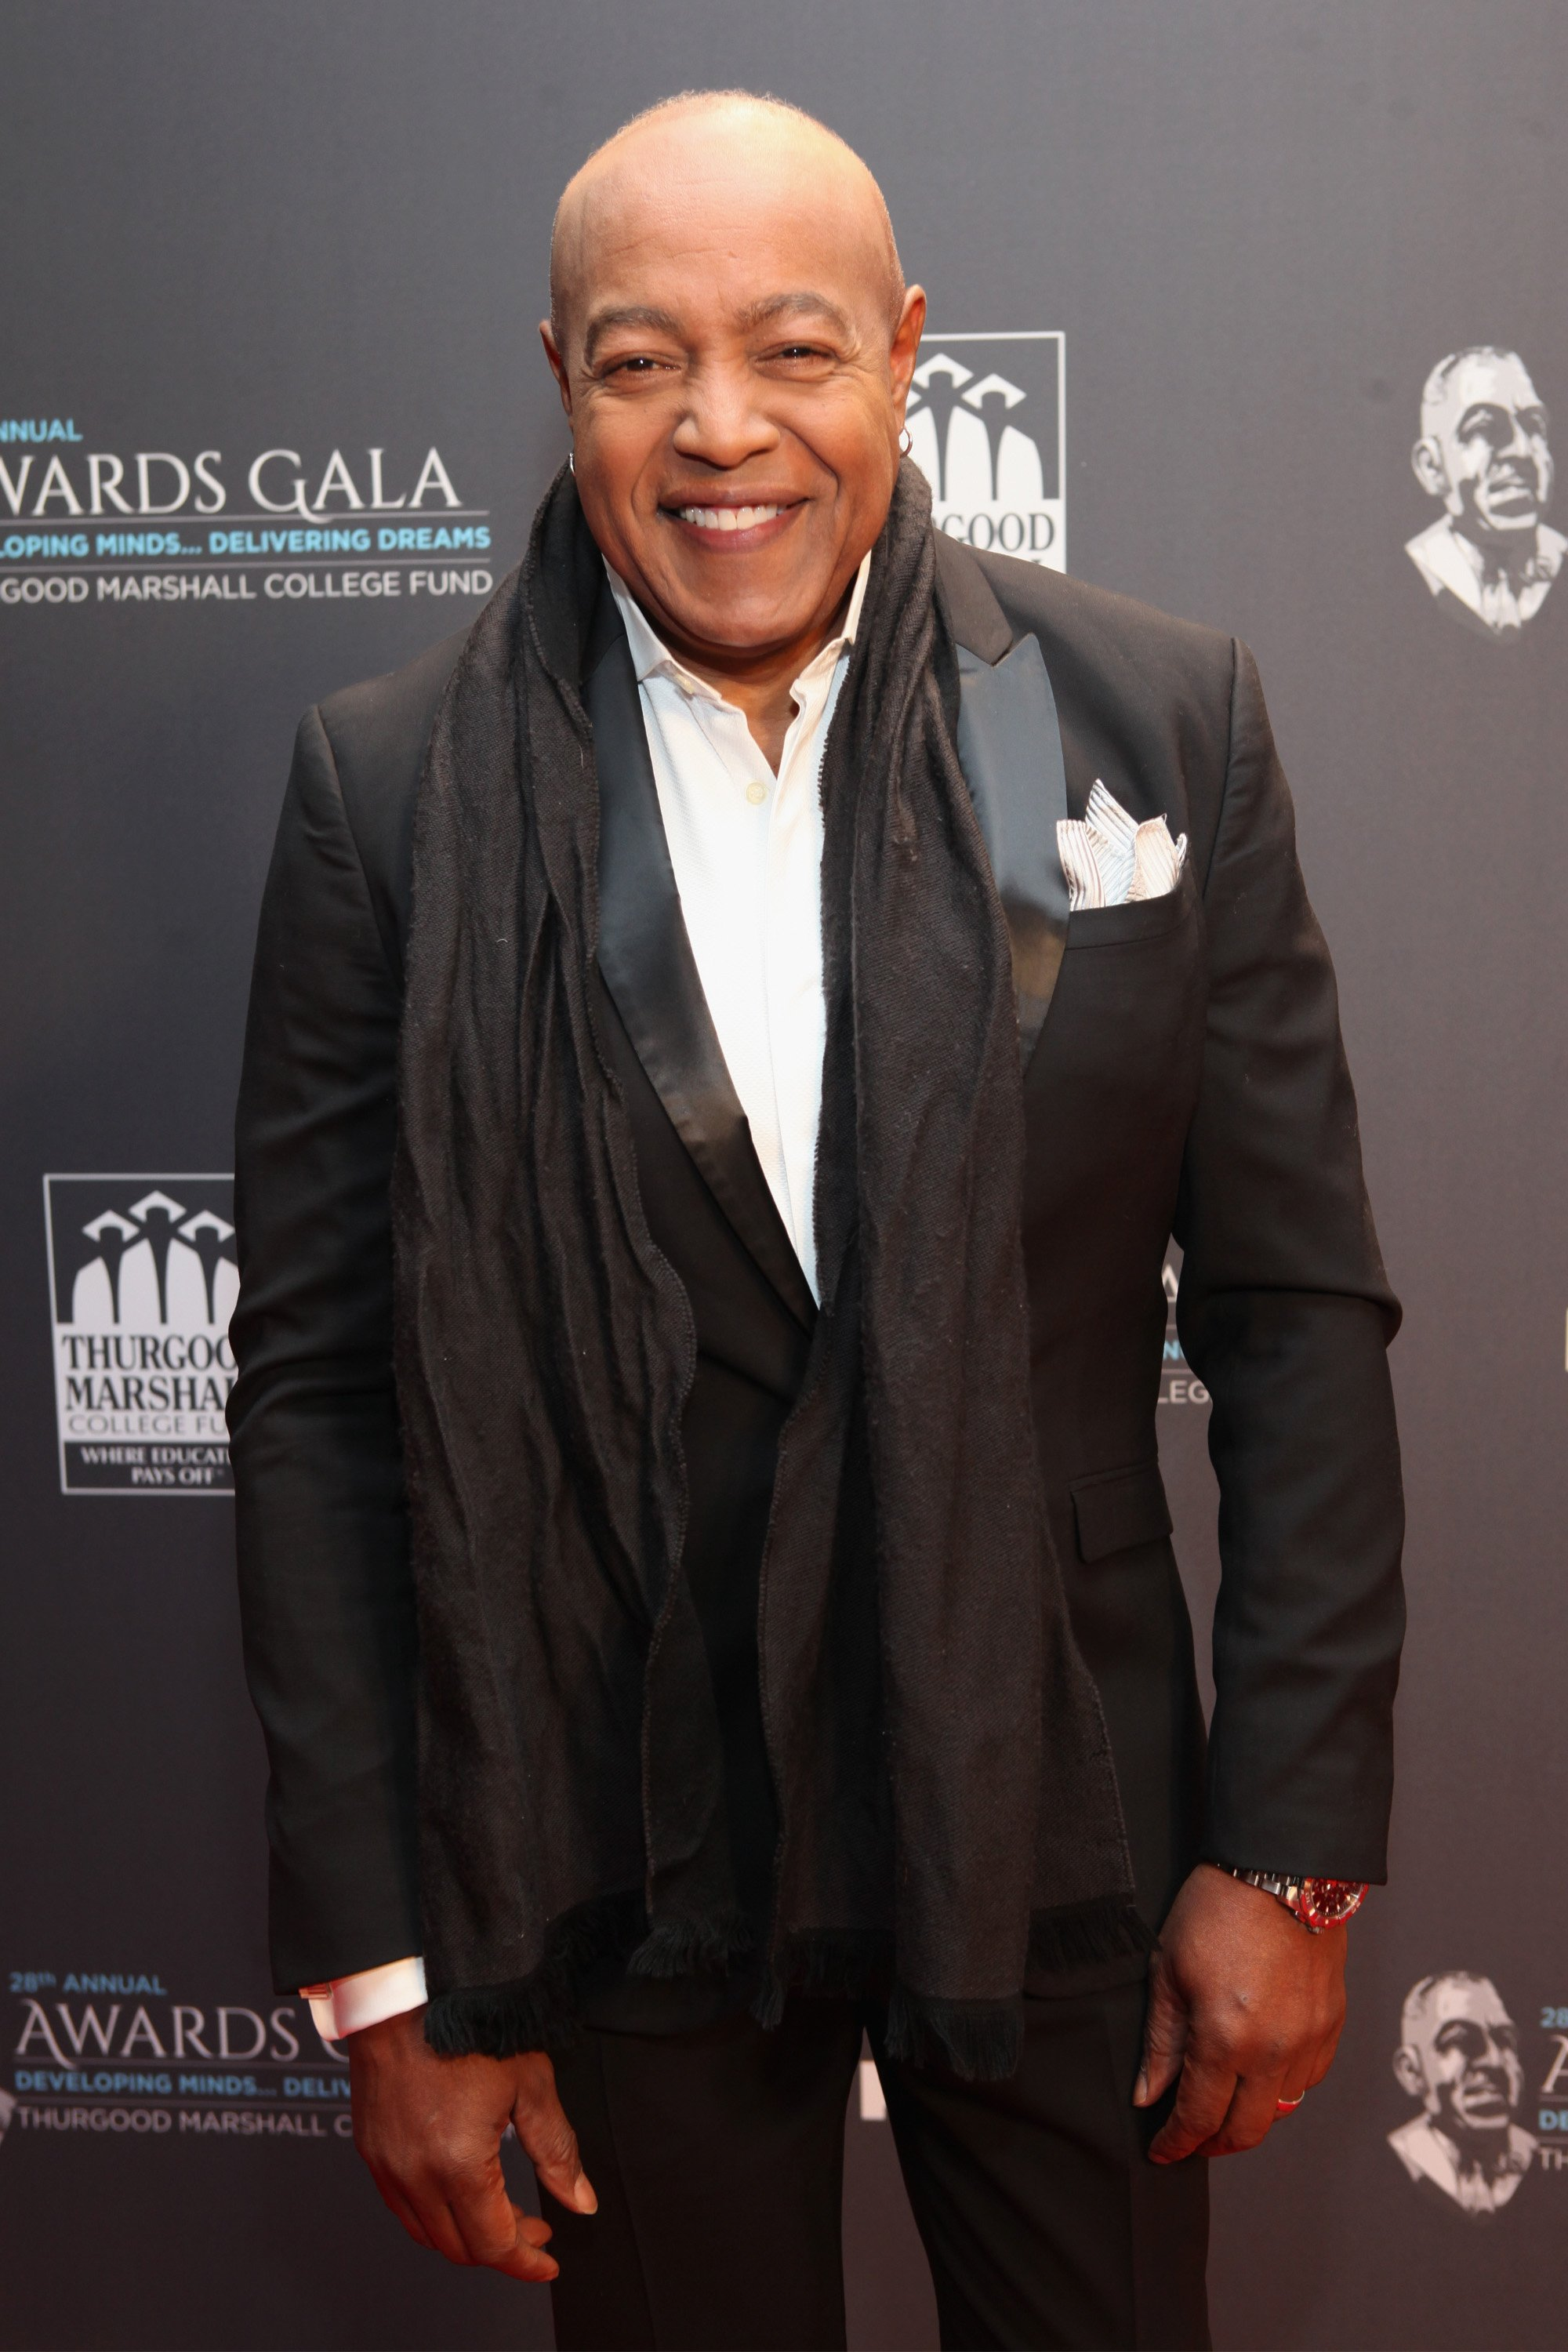 Peabo Bryson attending the Thurgood Marshall College Fund 28th Annual Awards Gala at Washington Hilton on November 21, 2016 in Washington, DC. | Source: Getty